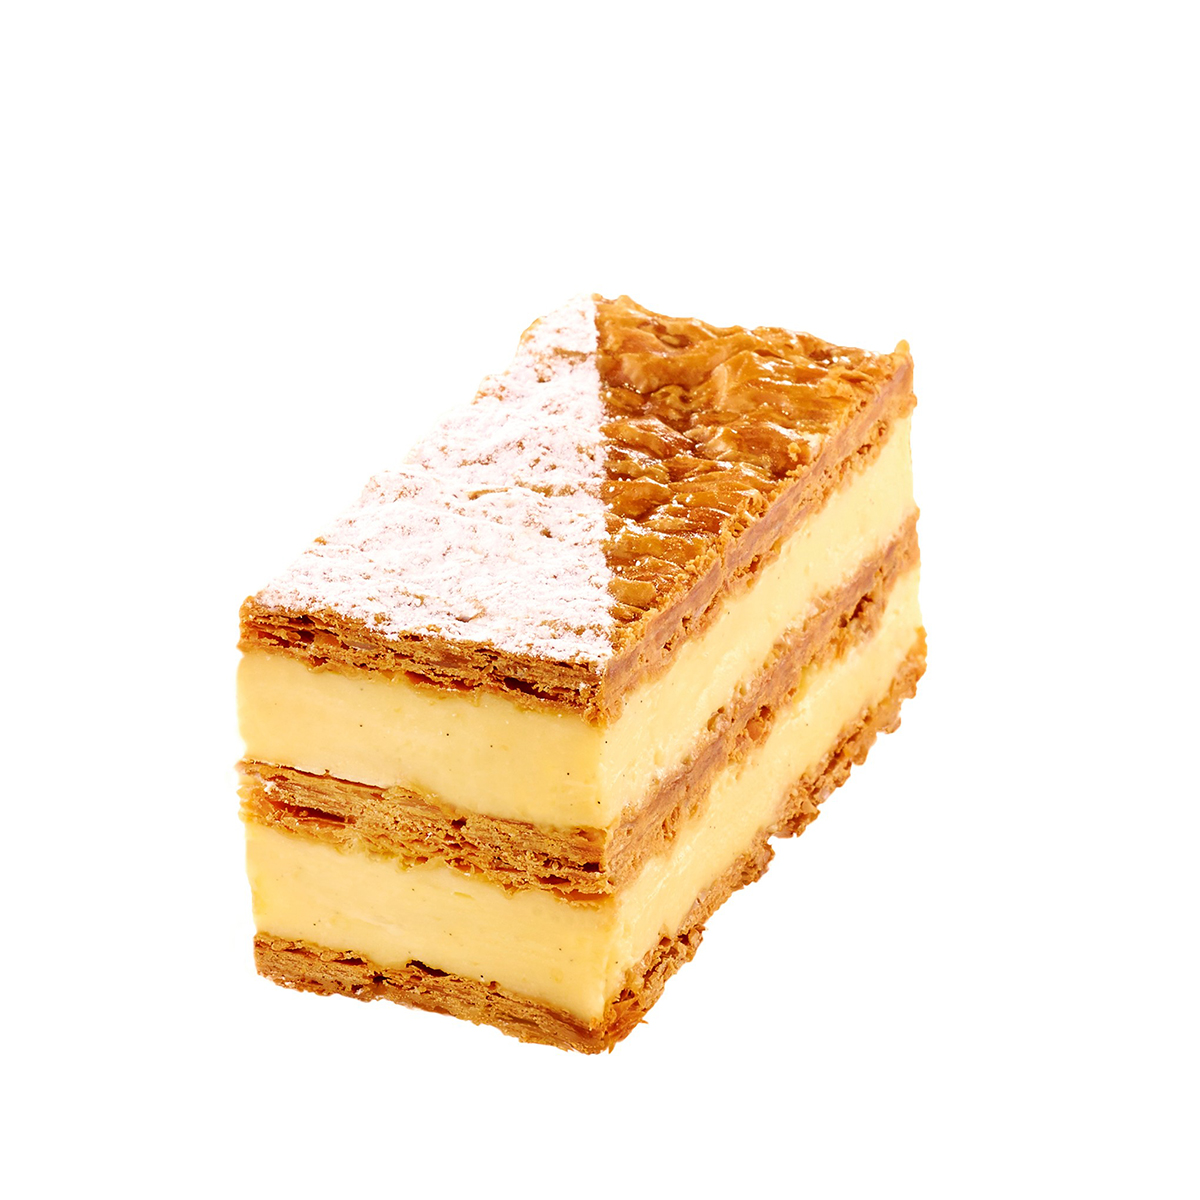 https://lemillefeuille.nl/wp-content/uploads/2018/06/home_assortiment_millefeuille.jpg